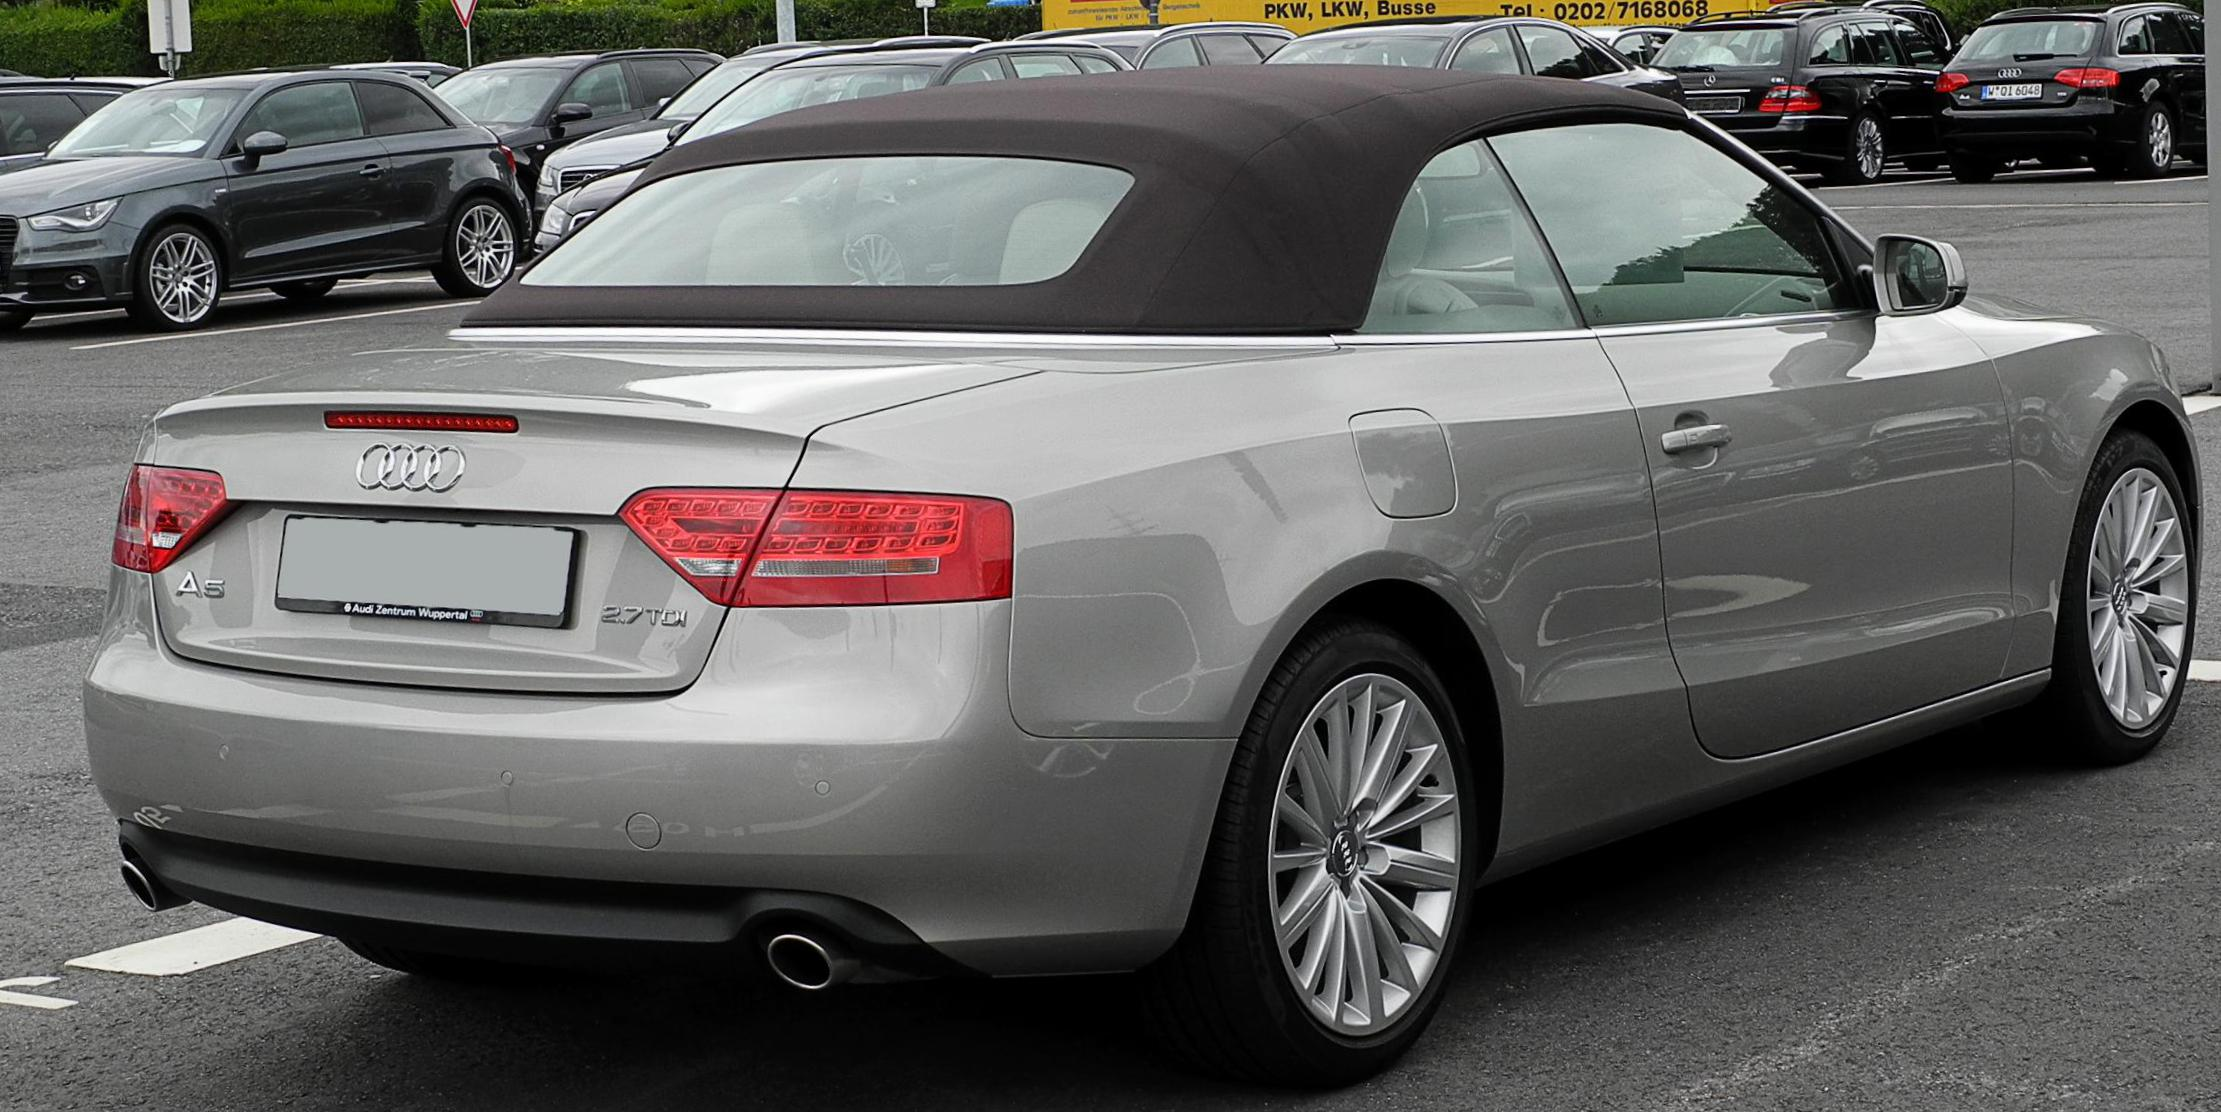 Audi A5 Cabriolet used 2012